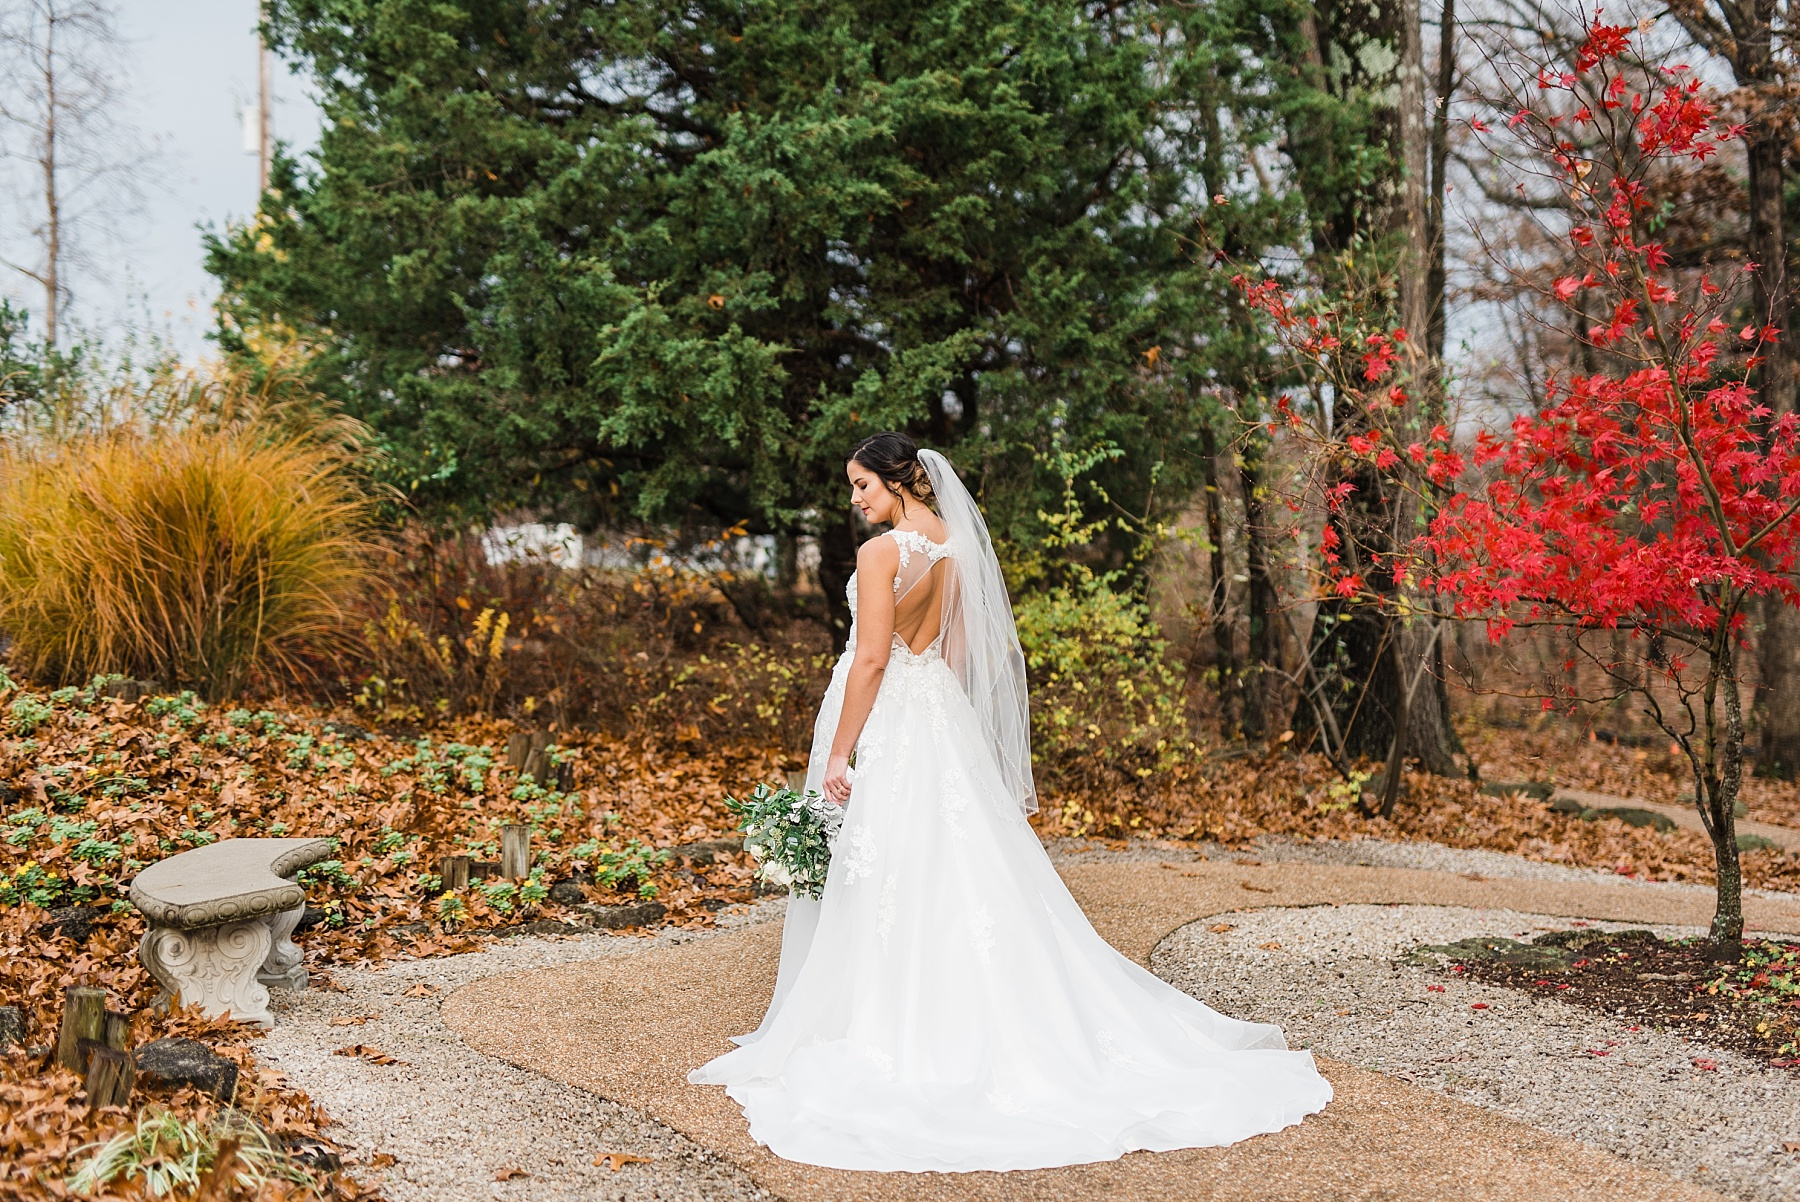 Couture Fall Wedding at The Exchange Venue in Camdenton Missouri_0084.jpg